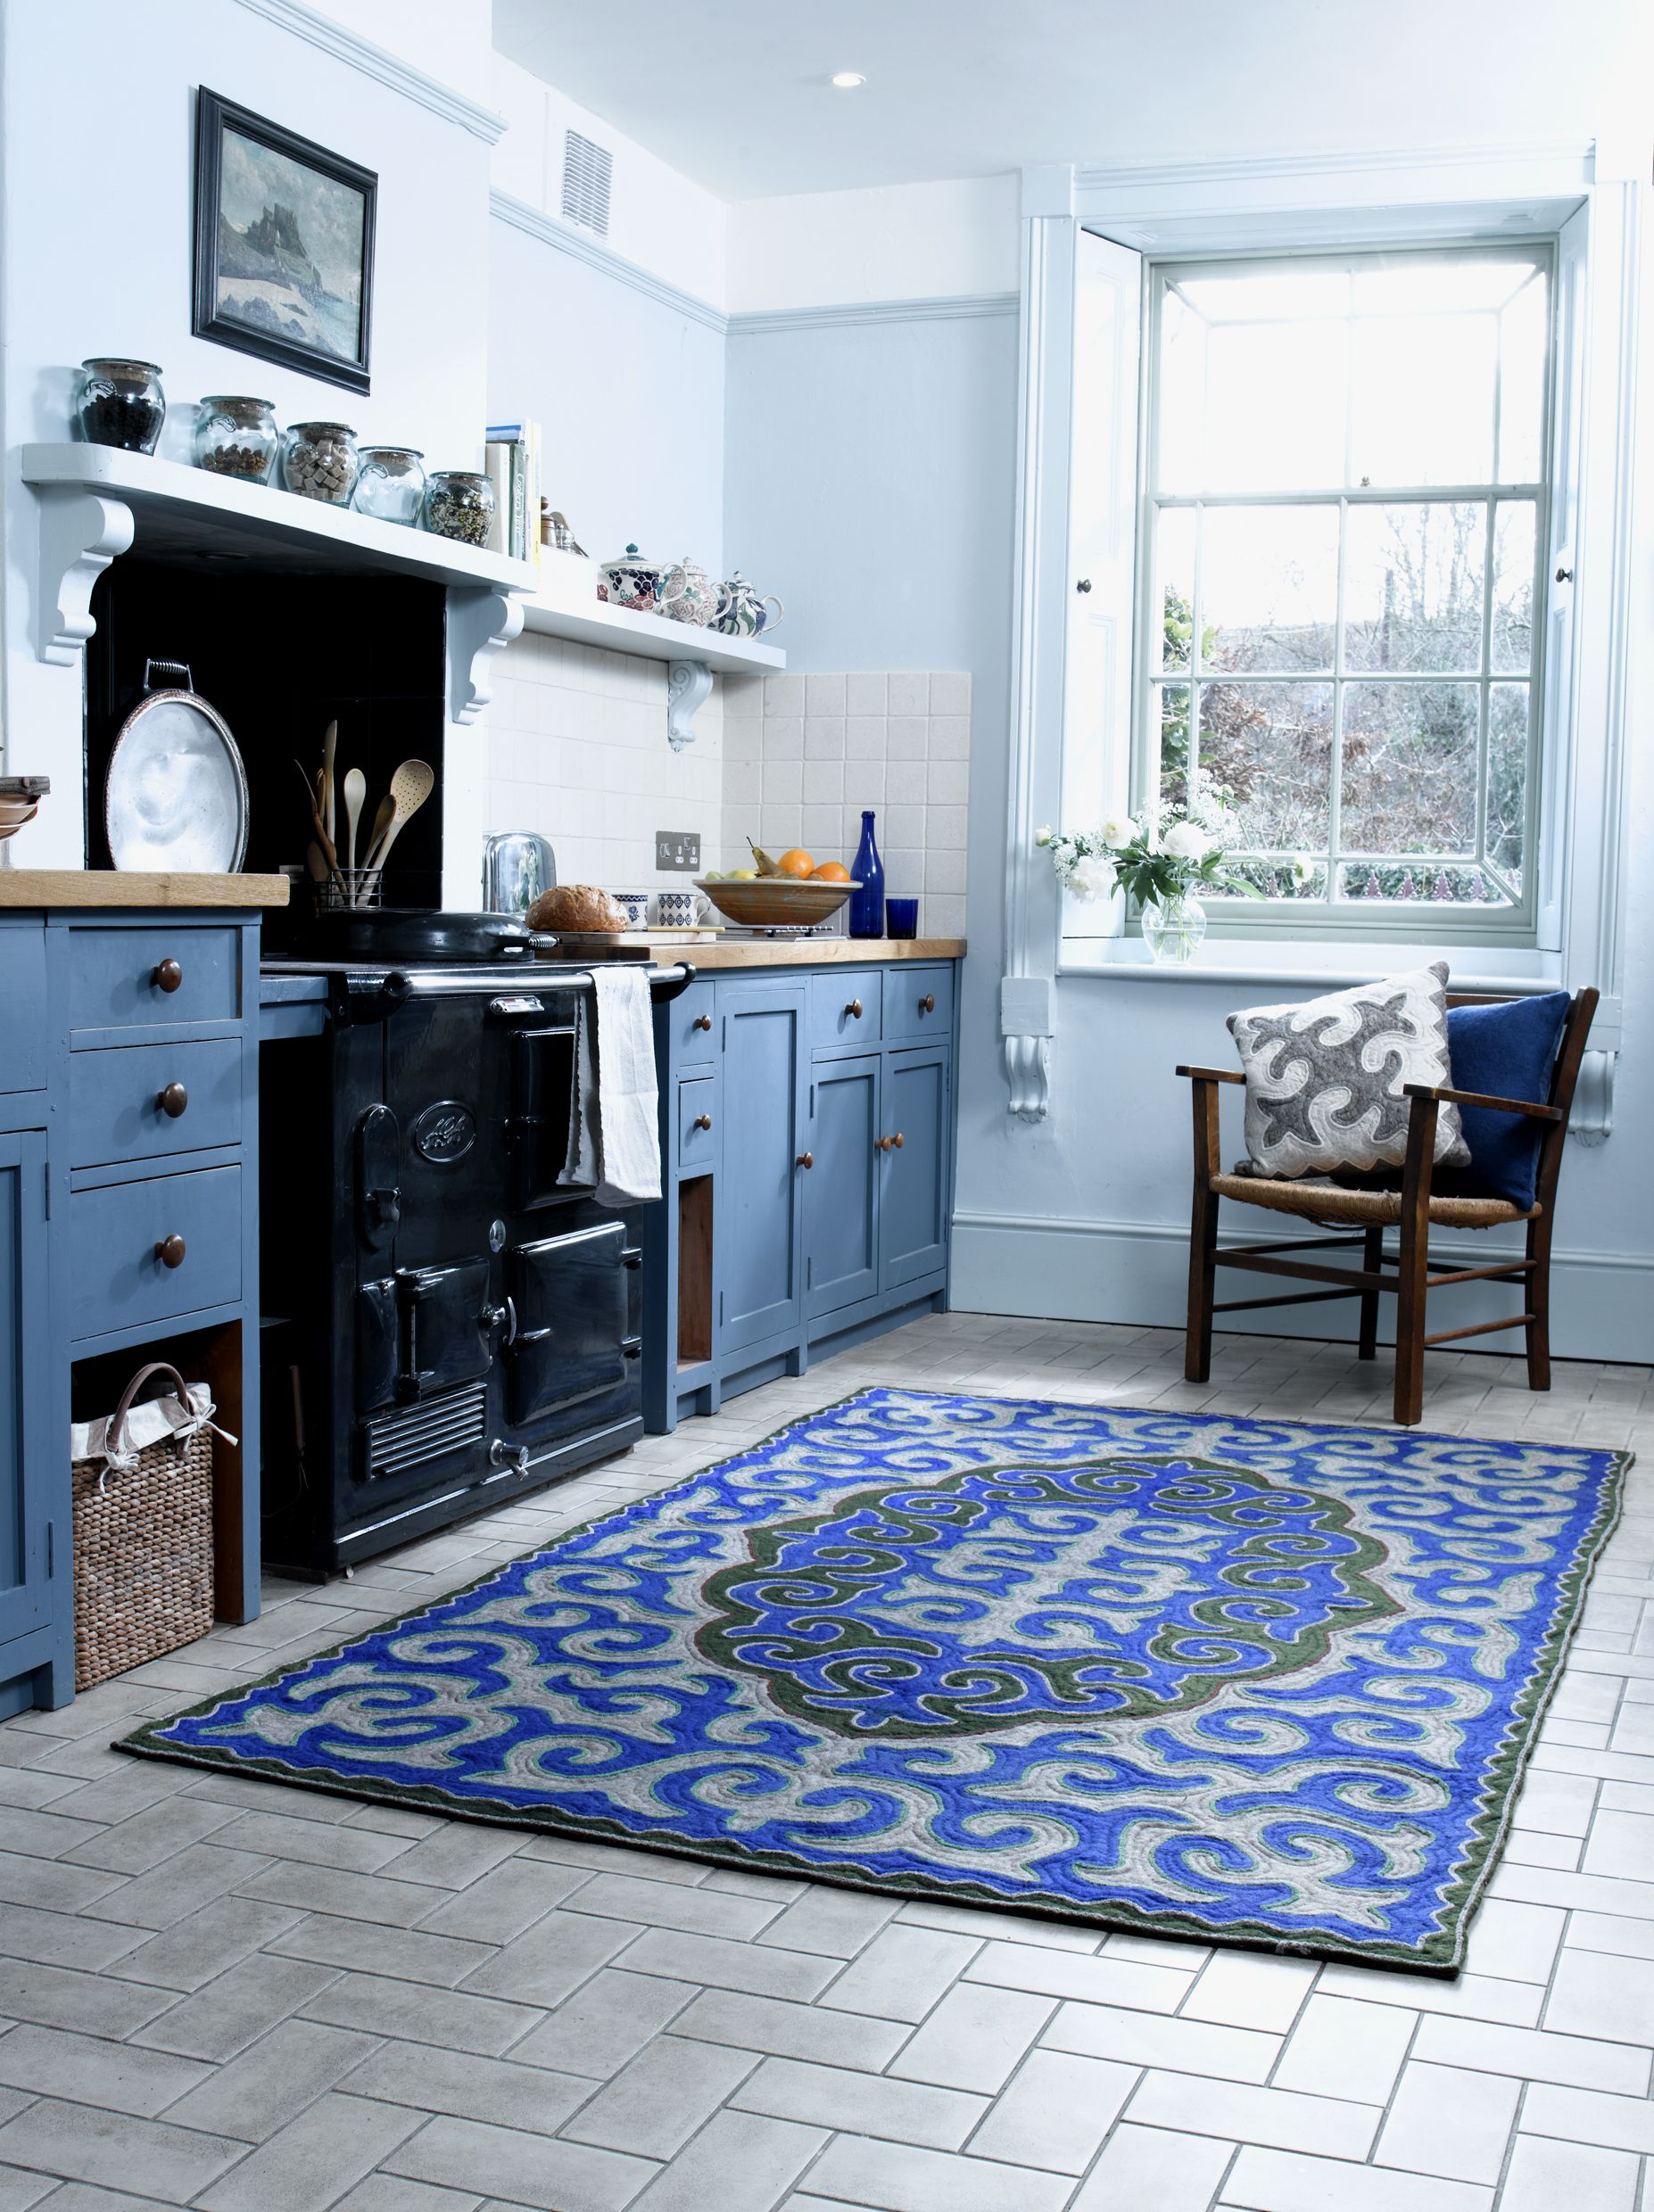 classic country kitchen style complete with a vibrant blue shyrdak